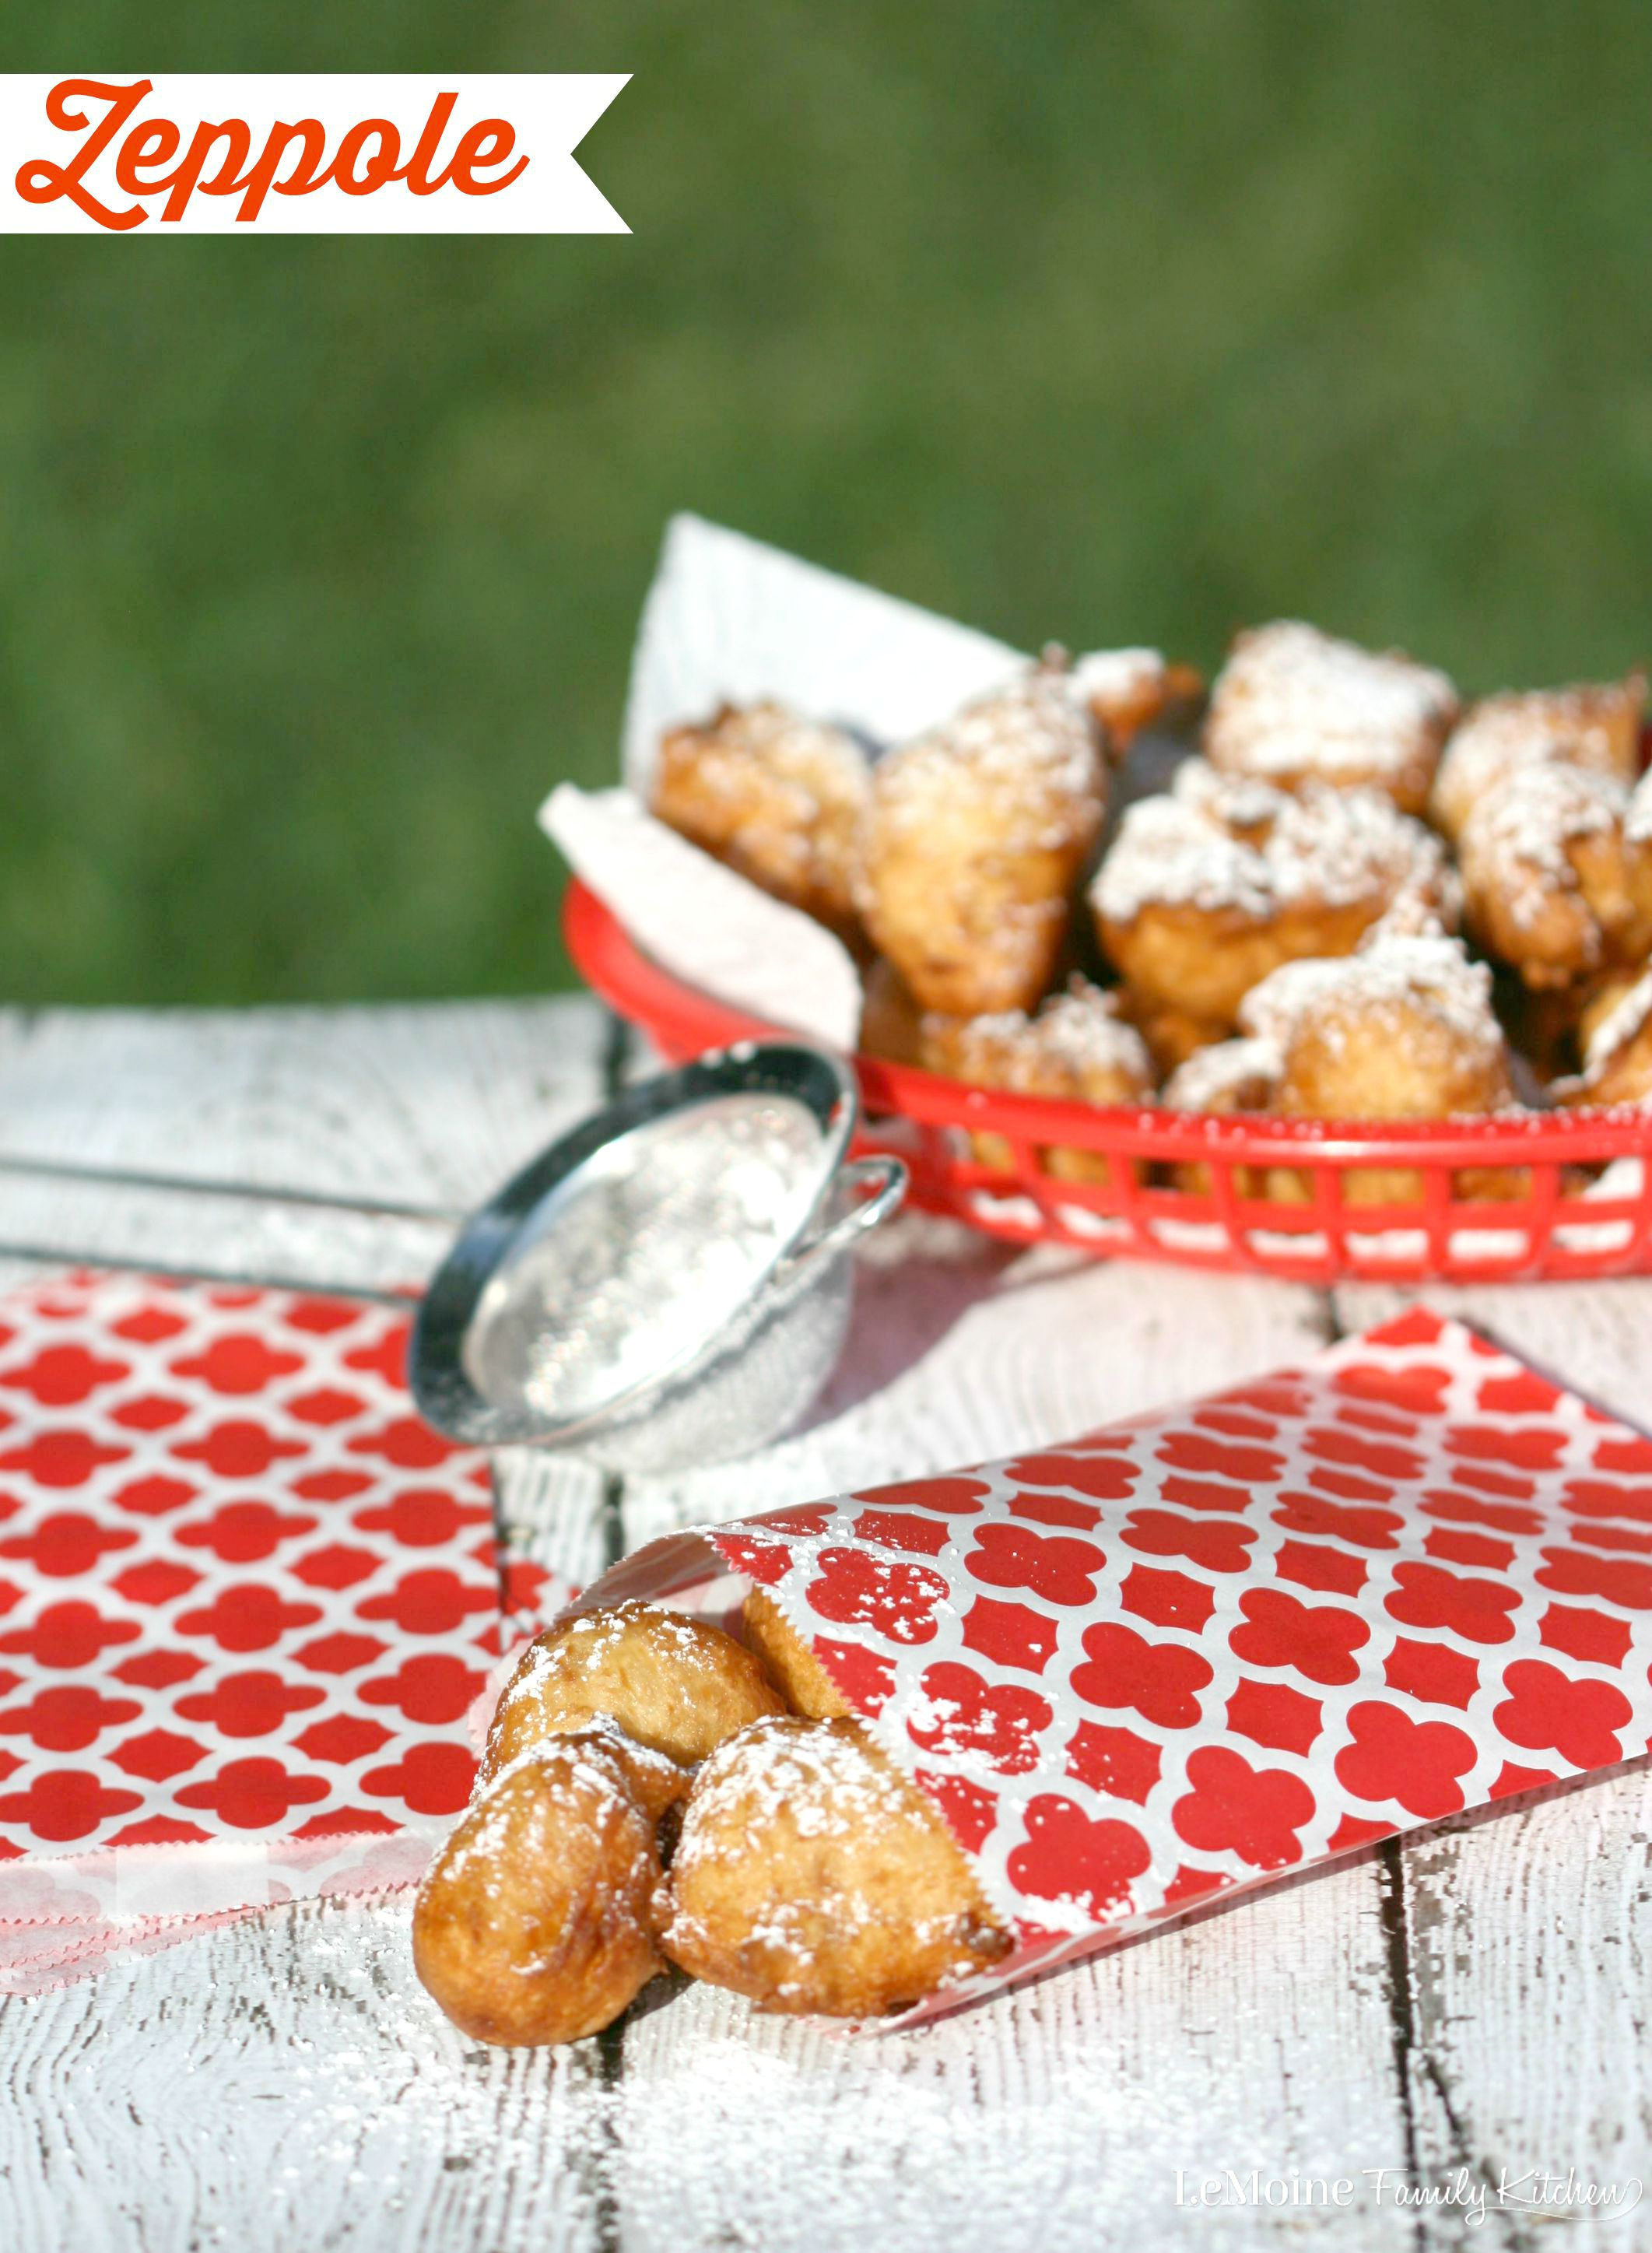 Zeppole Italian Street Food Lemoine Family Kitchen This Right Here Is The